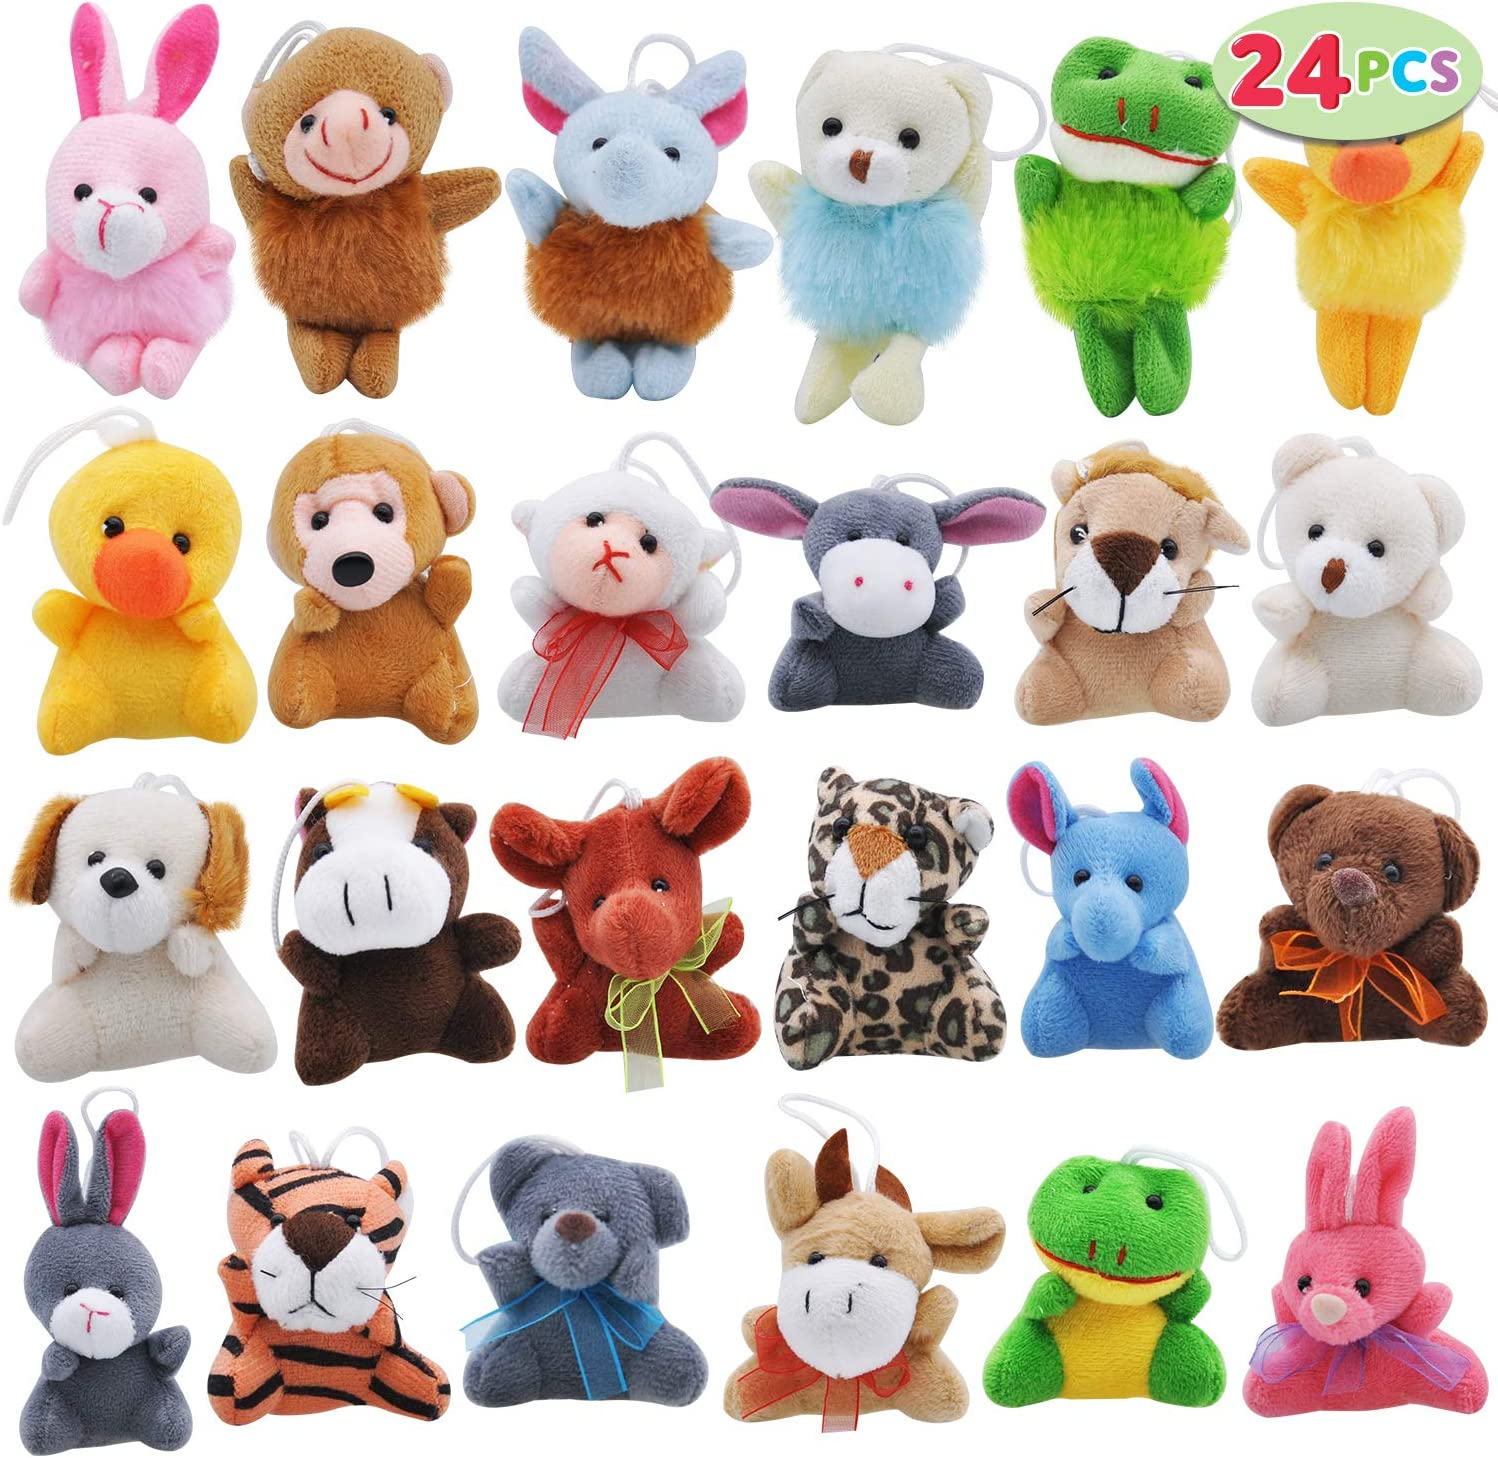 Joyin Toy 24 Pack Mini Animal Plush Toy Assortment (24 units 3